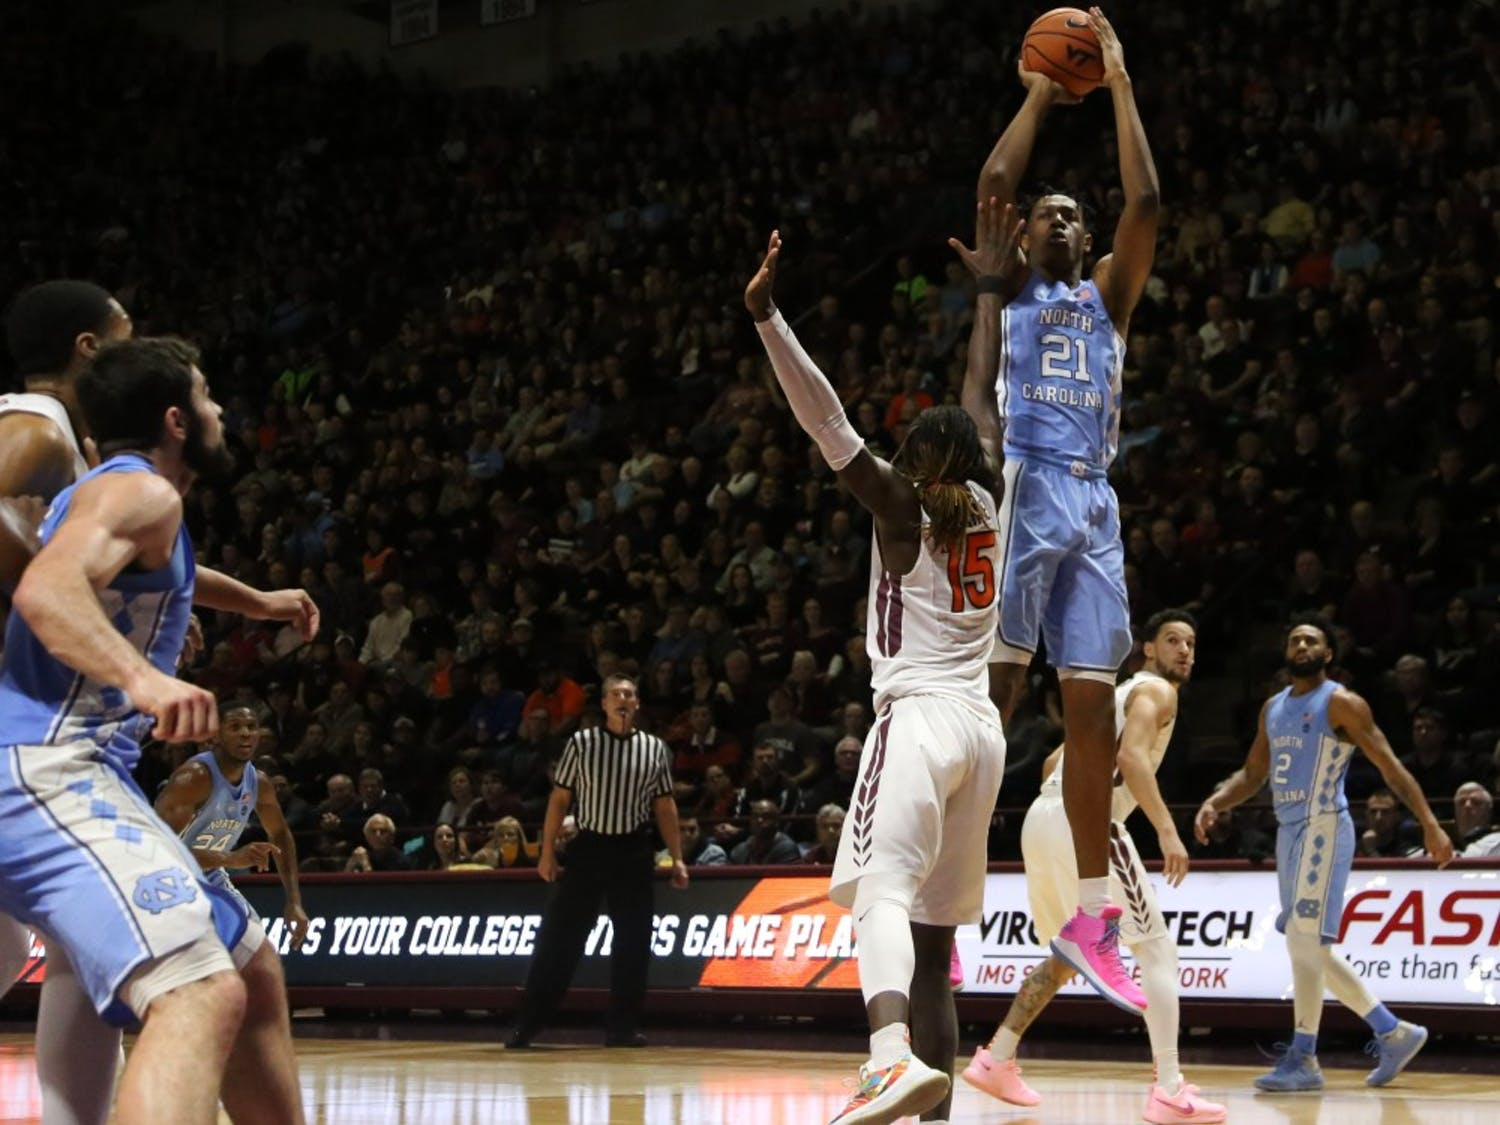 On the same day UNC jumped five spots to No. 10 in the latest AP Top 25 Poll, it lost to Virginia Tech, 80-69, on the road. The Tar Heels are now 1-3 in road ACC games, with losses to Florida State, Virginia and VT and one close win against Notre Dame.